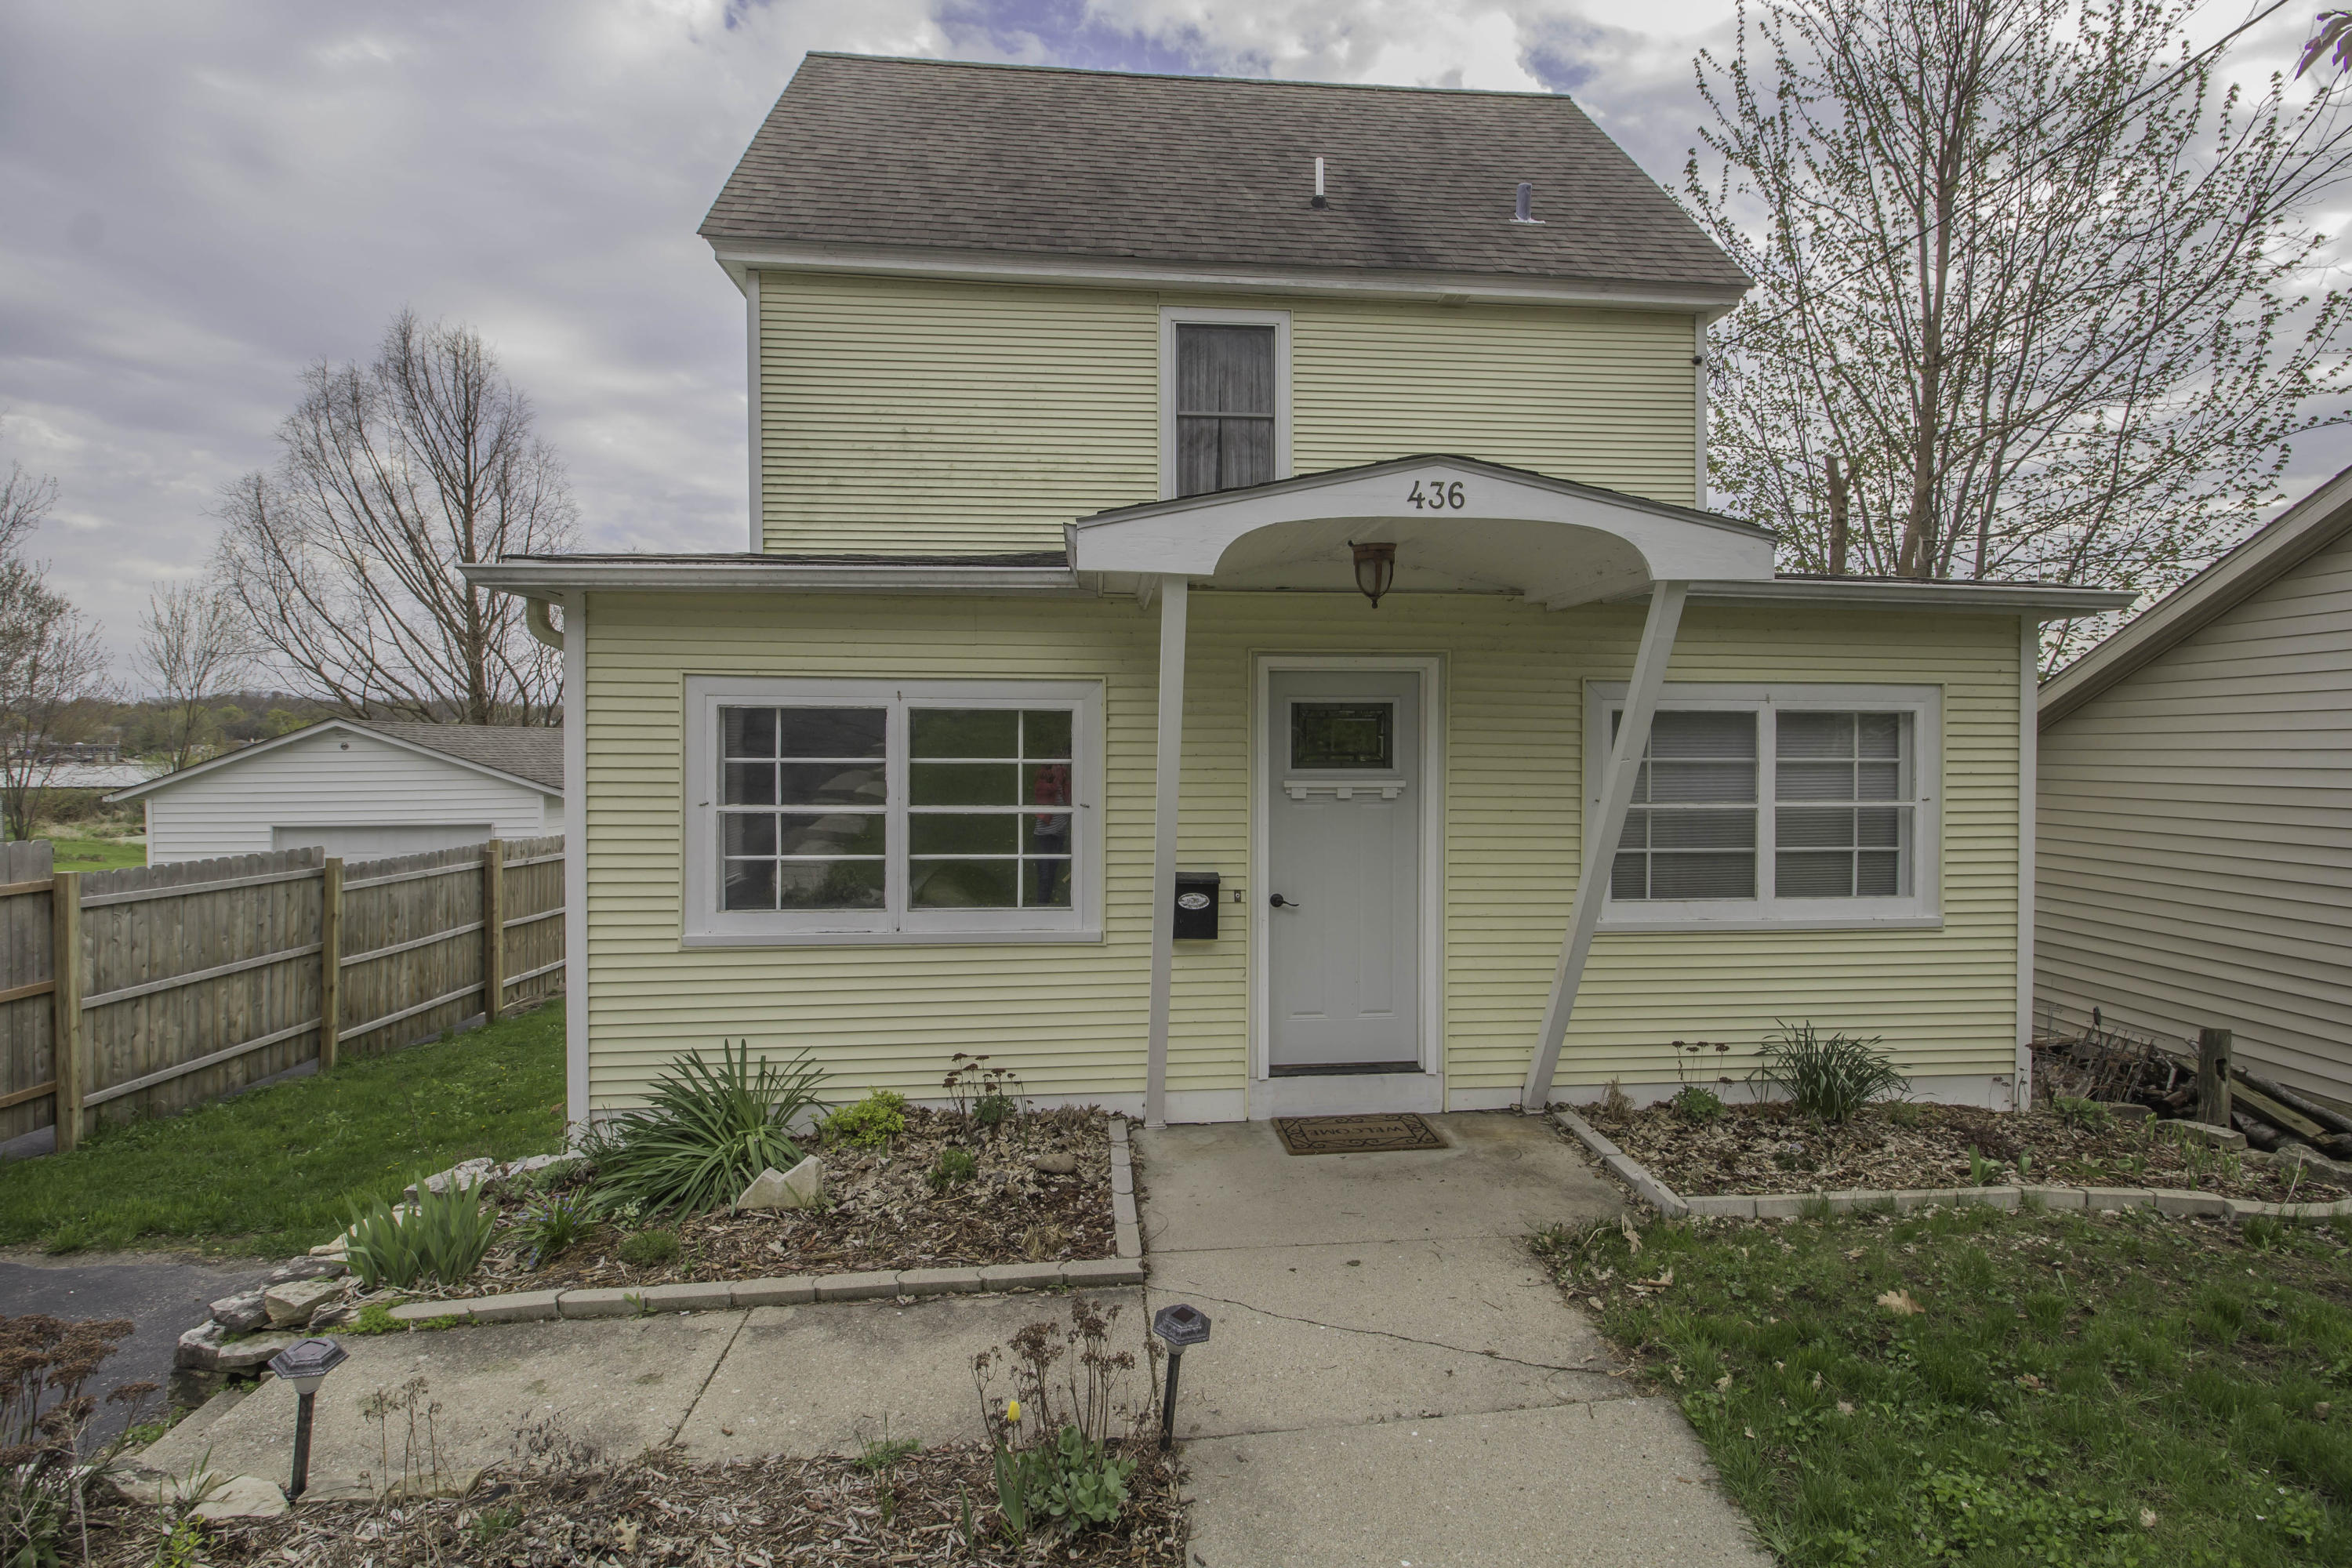 436 Wisconsin Ave, Pewaukee, Wisconsin 53072, 2 Bedrooms Bedrooms, 7 Rooms Rooms,2 BathroomsBathrooms,Single-Family,For Sale,Wisconsin Ave,1635586